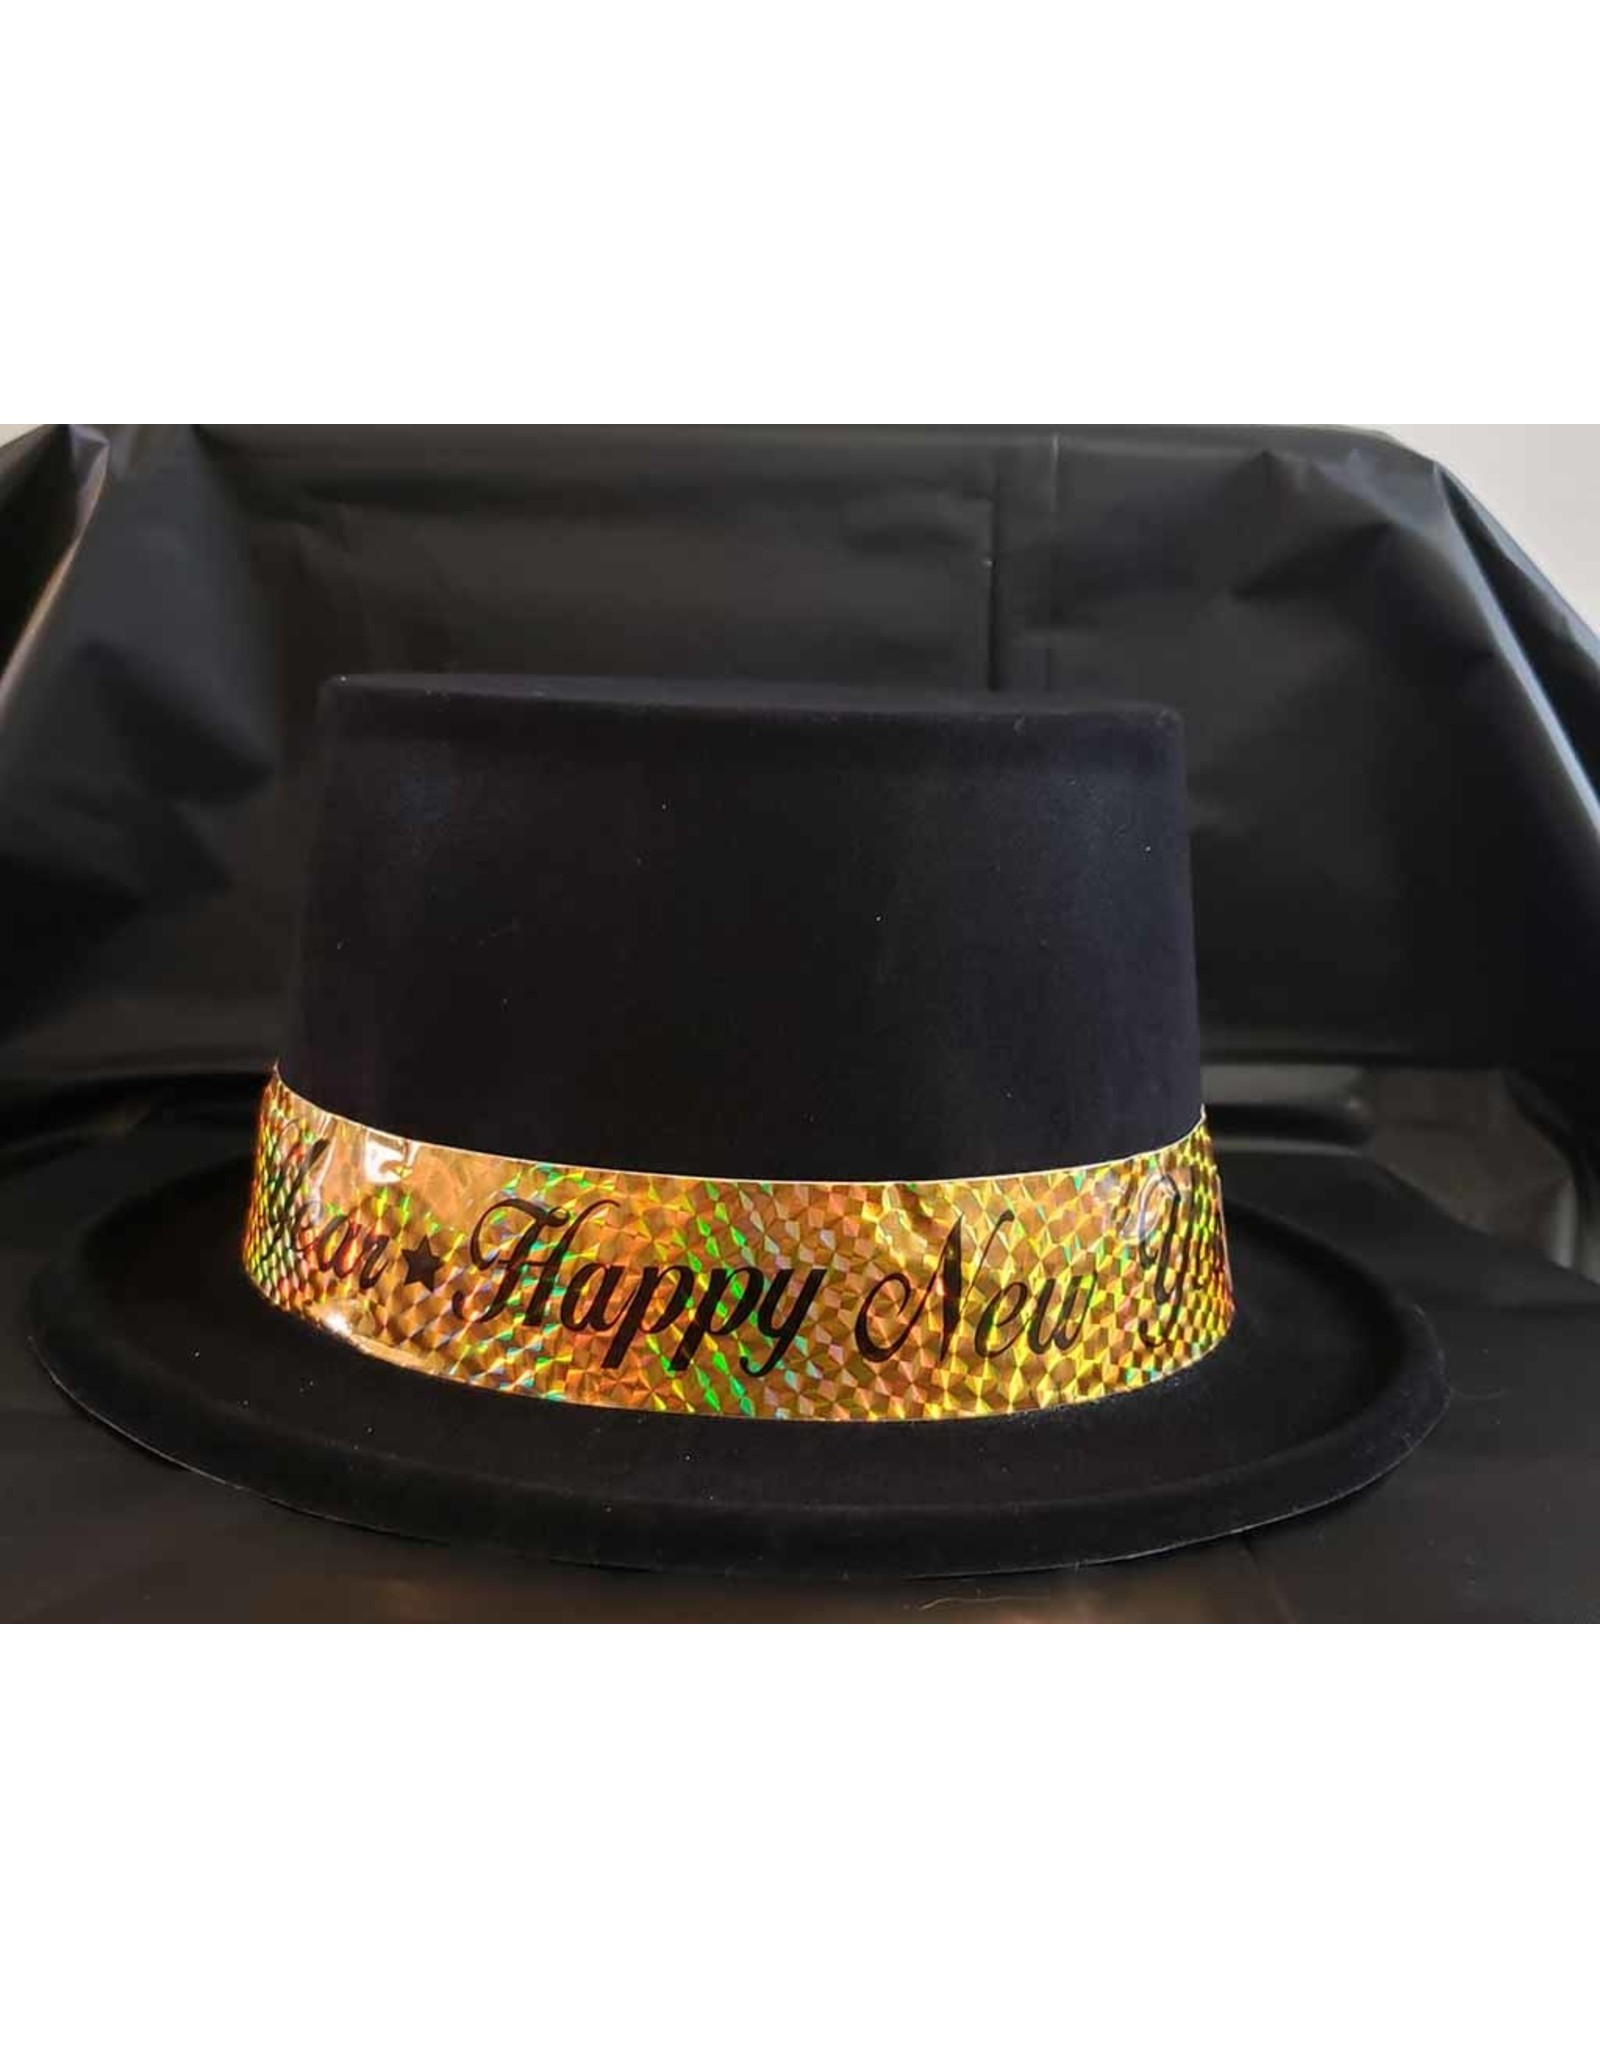 everbright Black Felt New Year Top Hat w/ Gold Band